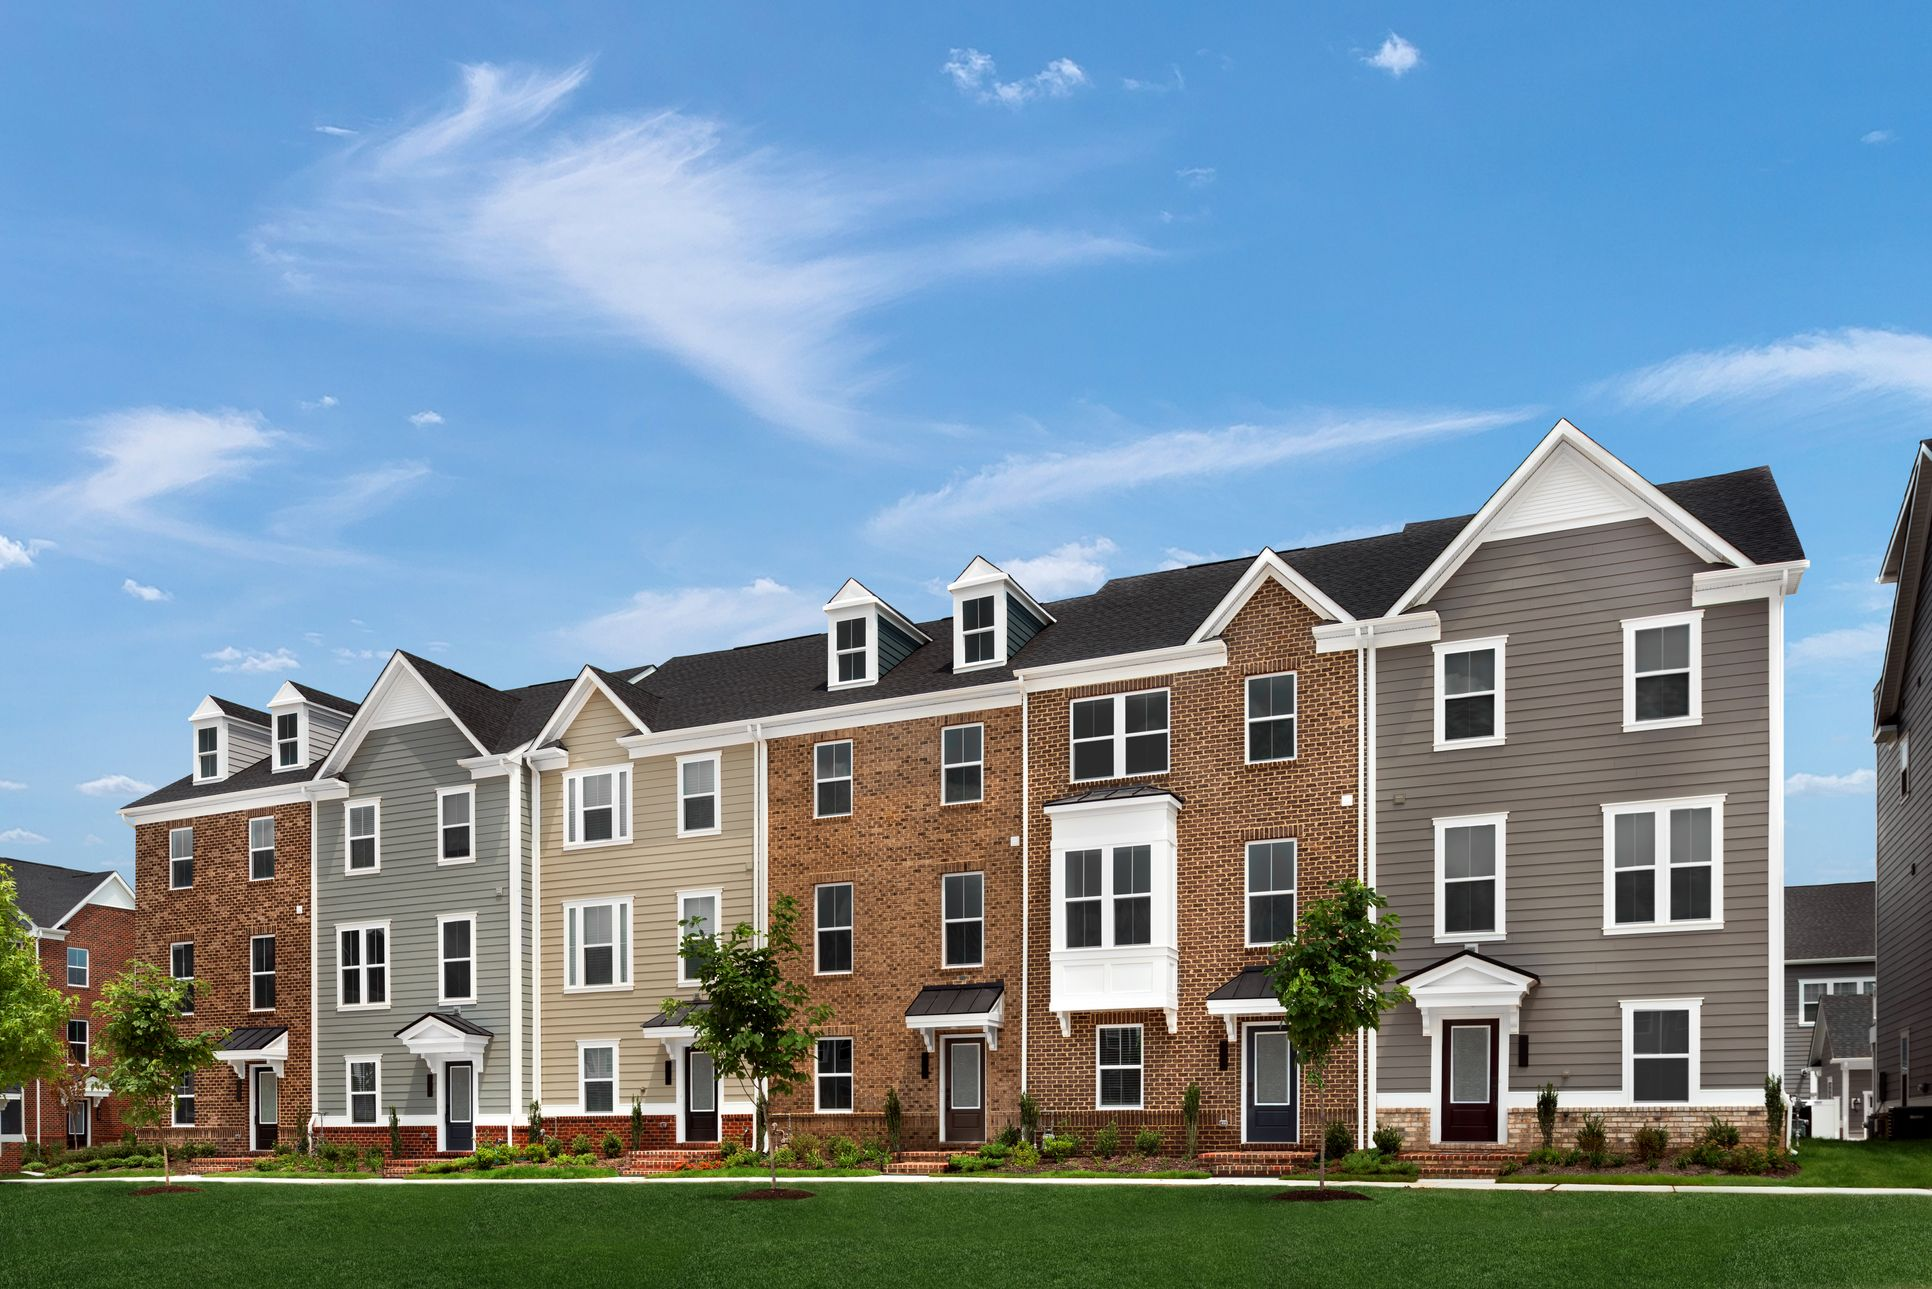 DON'T MISS OUT ON YOUR OPPORTUNITY TO OWN AT GREENLEIGH TOWNHOMES!:Offering Two-Car Garage Rear Entry Townhomes from the upper $300s!Join the VIP Listand our sales representative will contact you. Plus youcan schedule your 1-on-1 Appointment today!